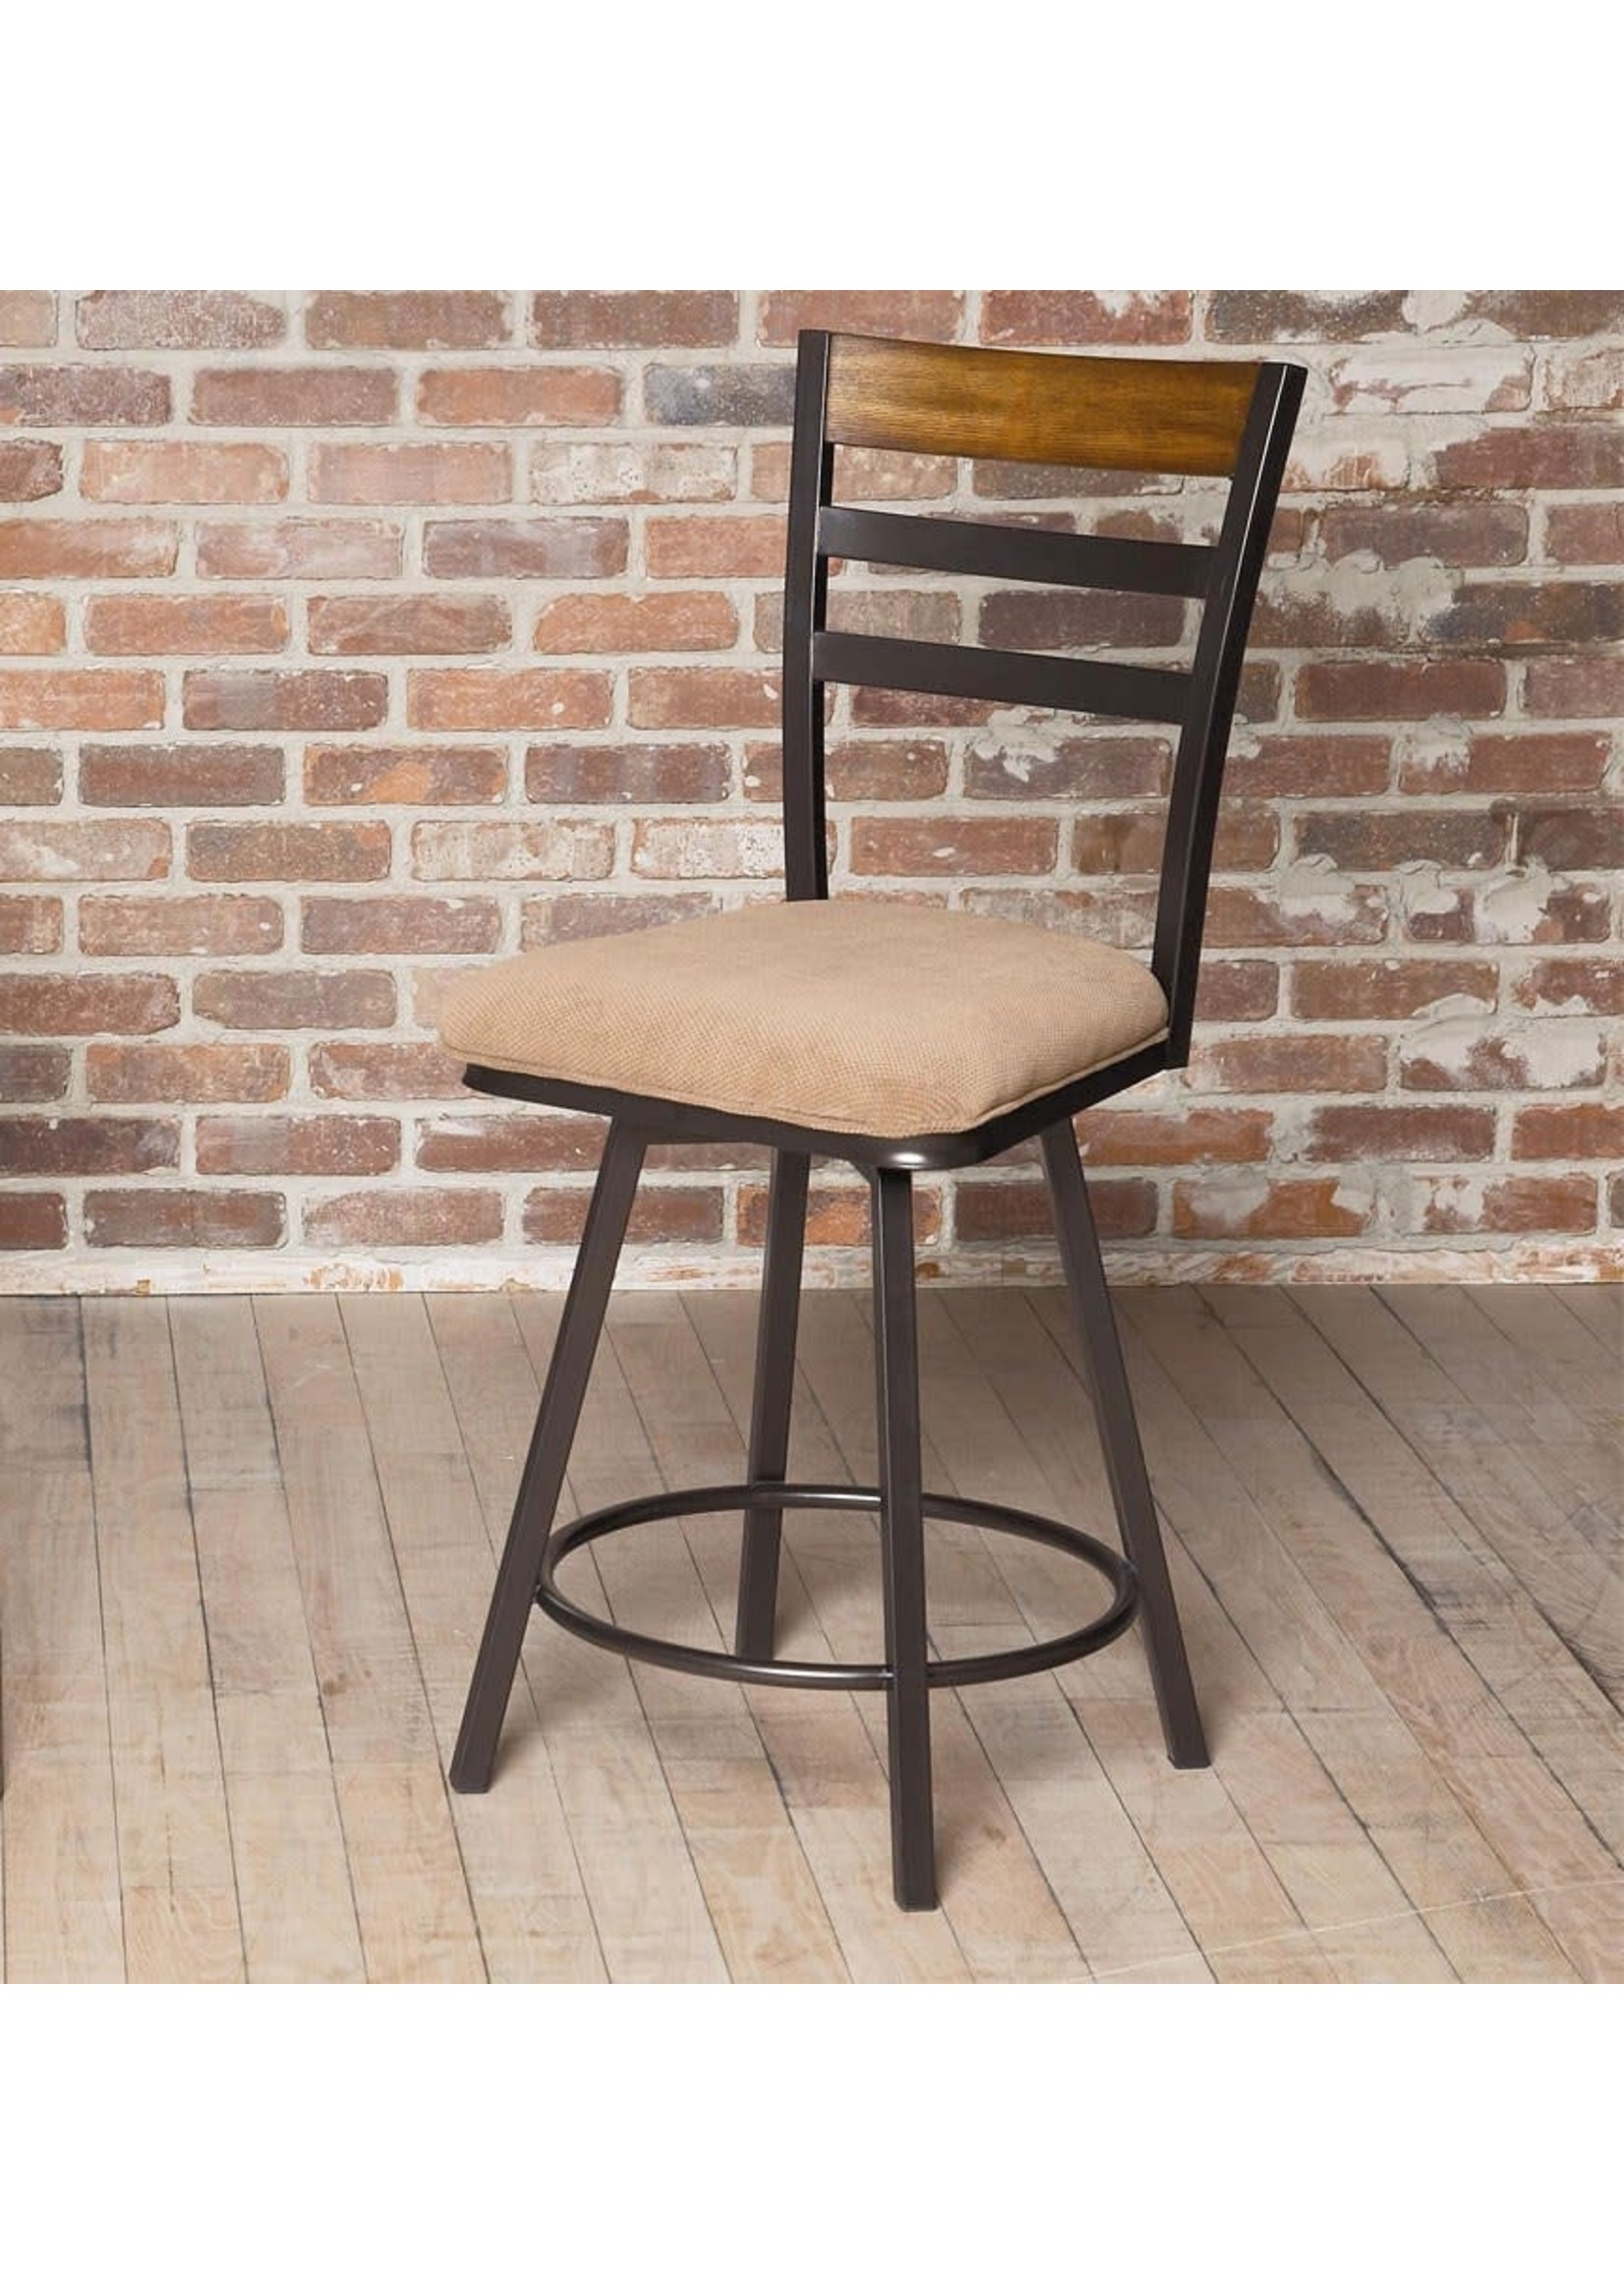 LARGO TEMPO SWIVEL COUNTER HEIGHT CHAIR